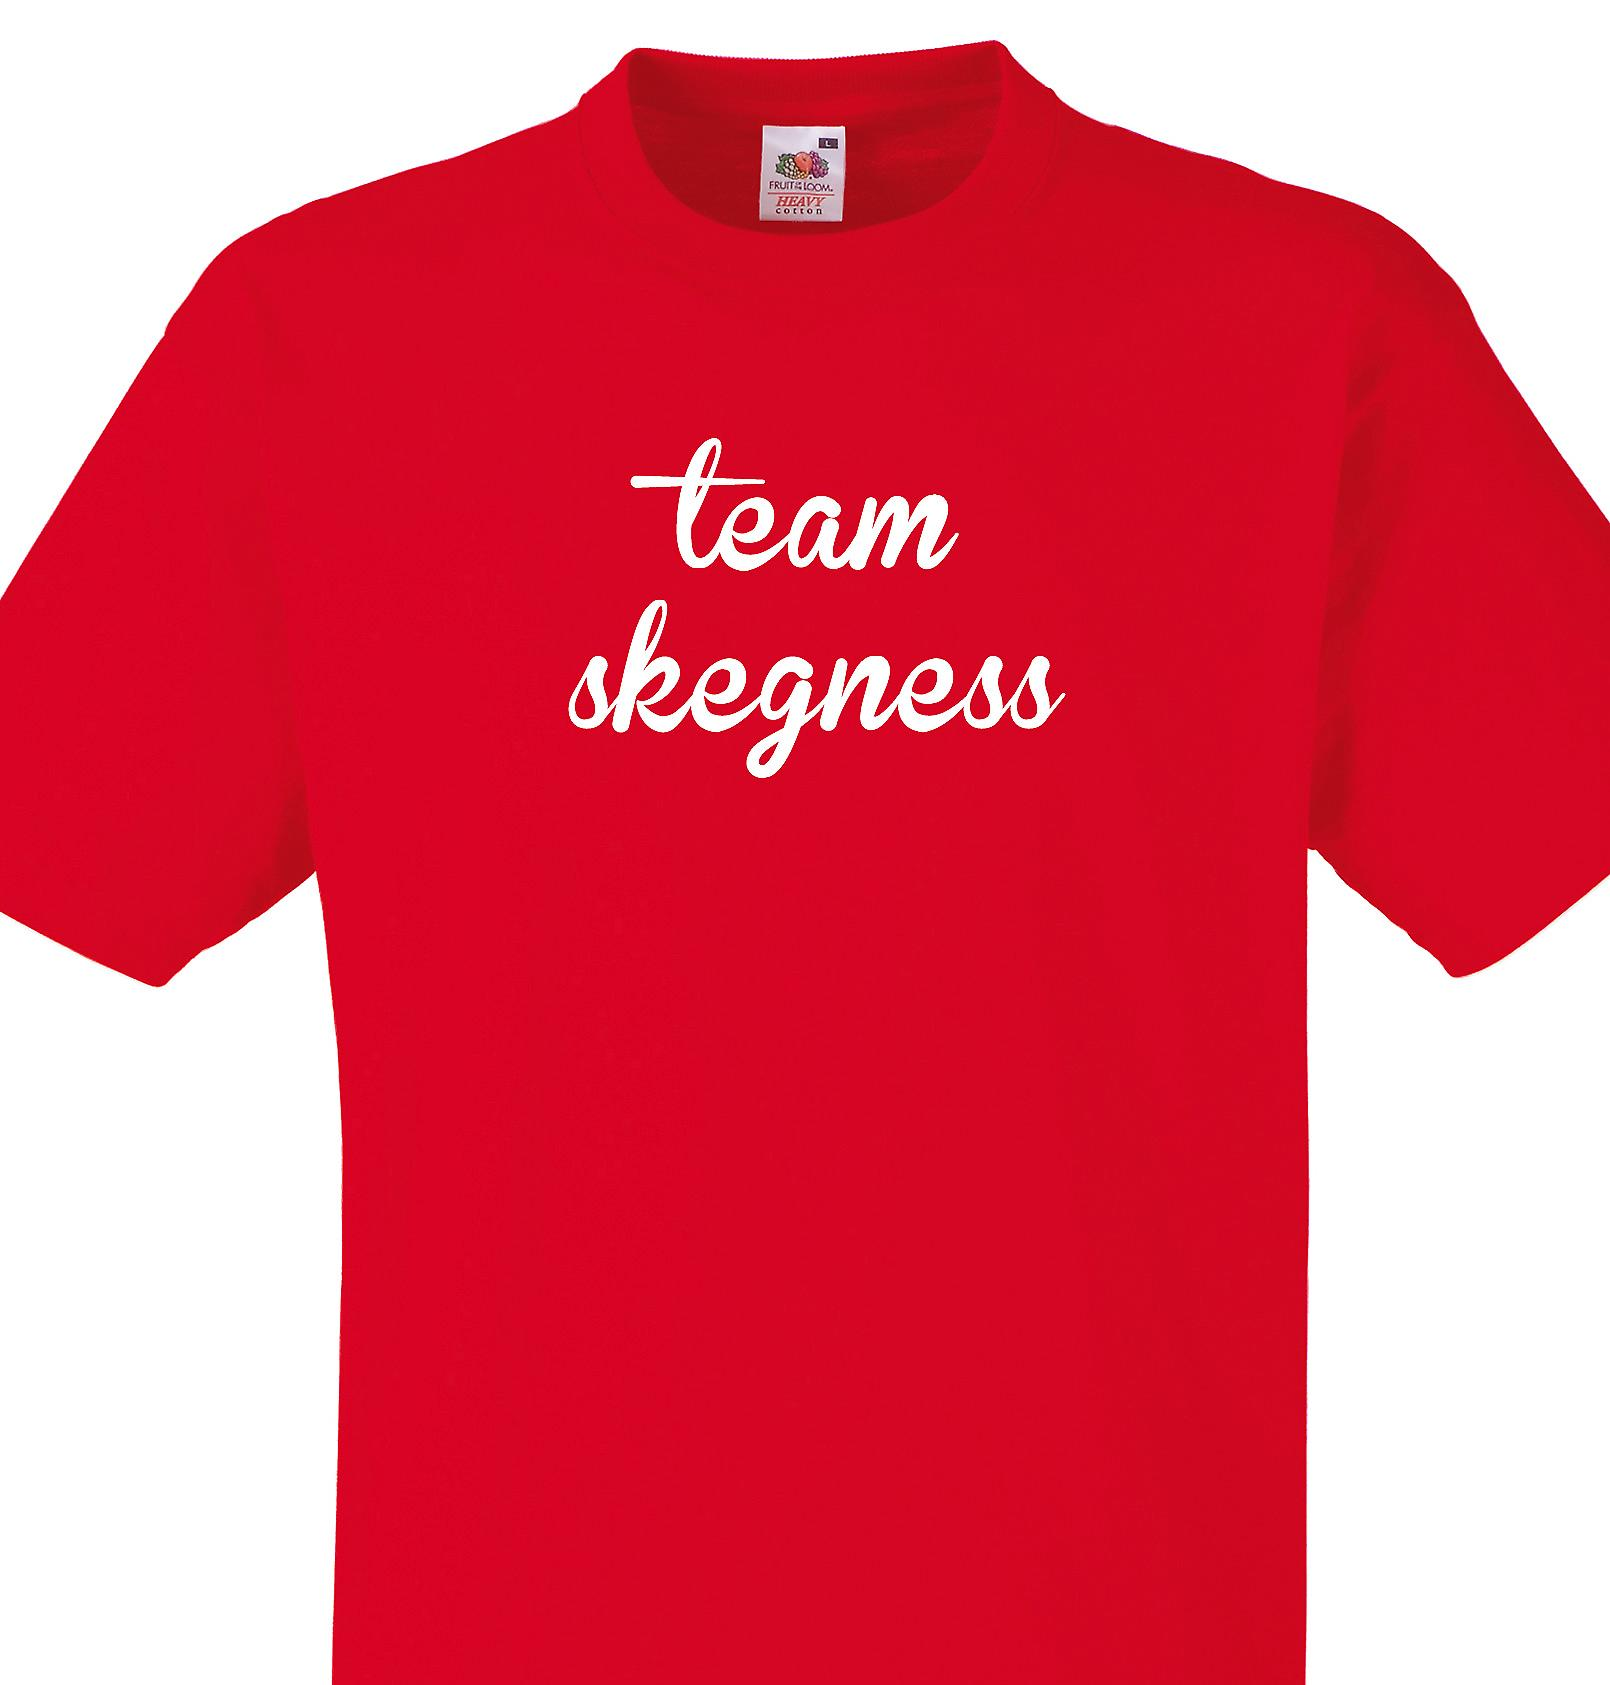 Team Skegness Red T shirt